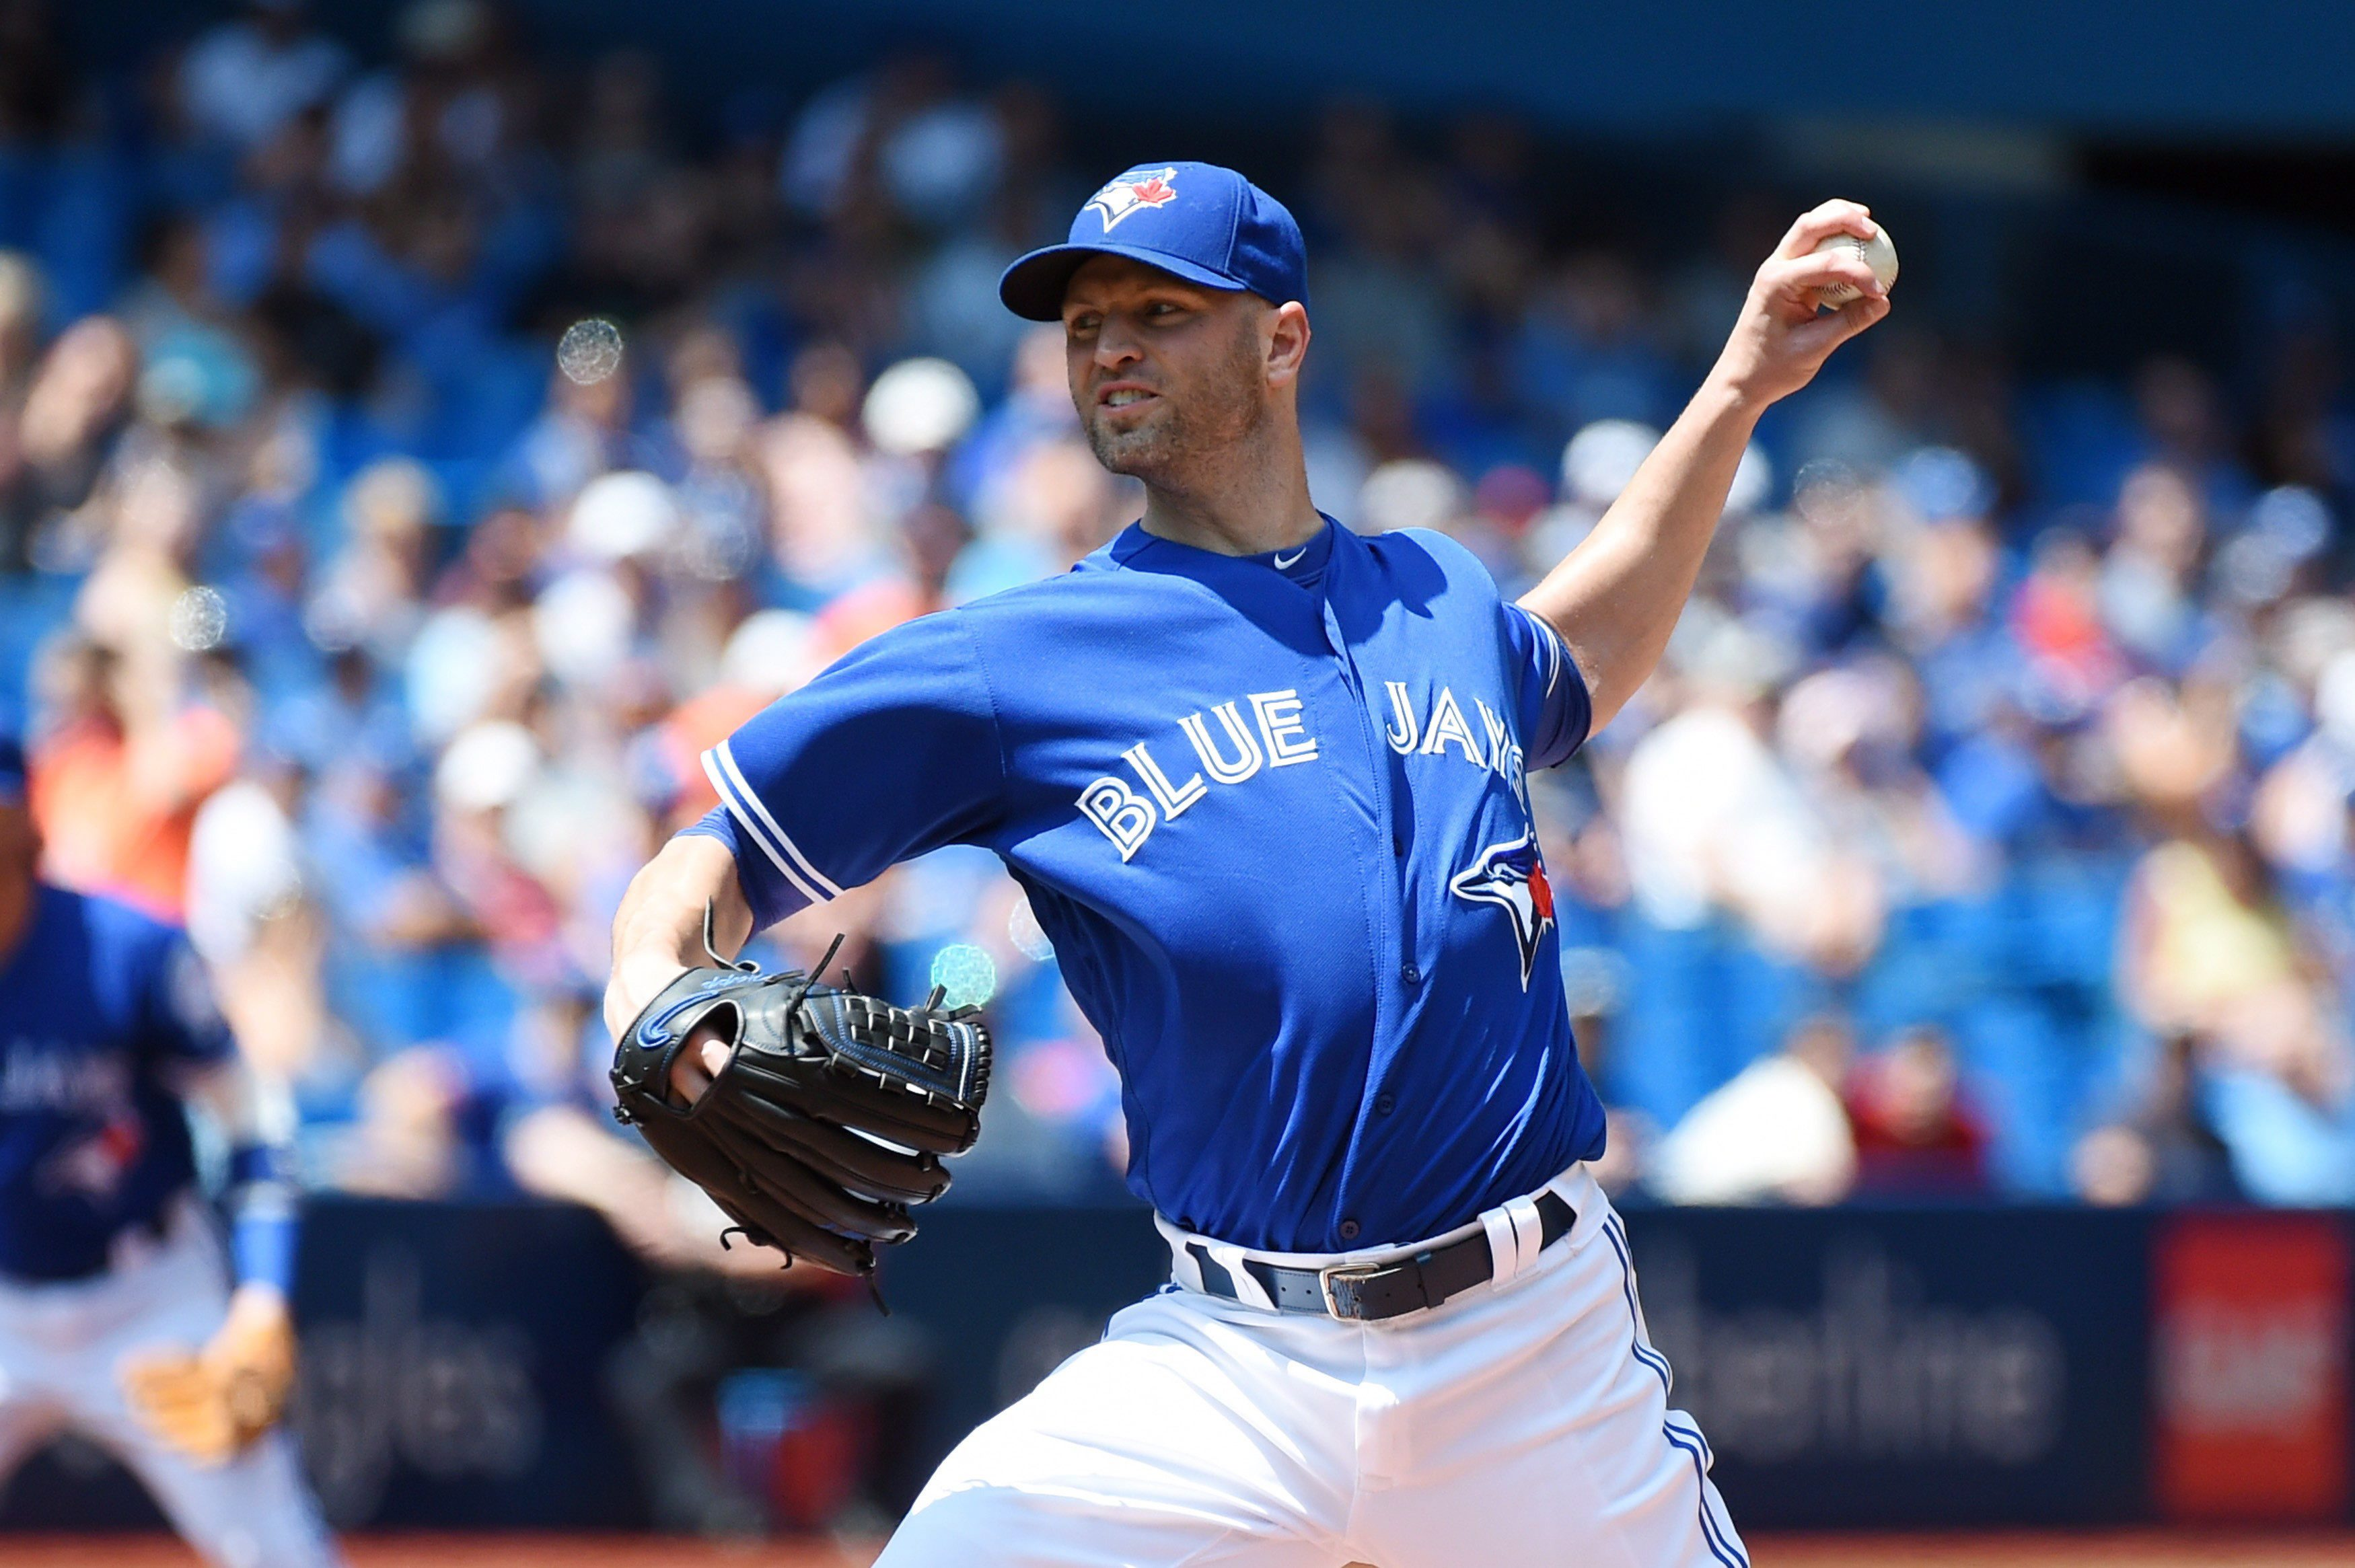 Blue Jays agree to deal JA Happ to Yankees